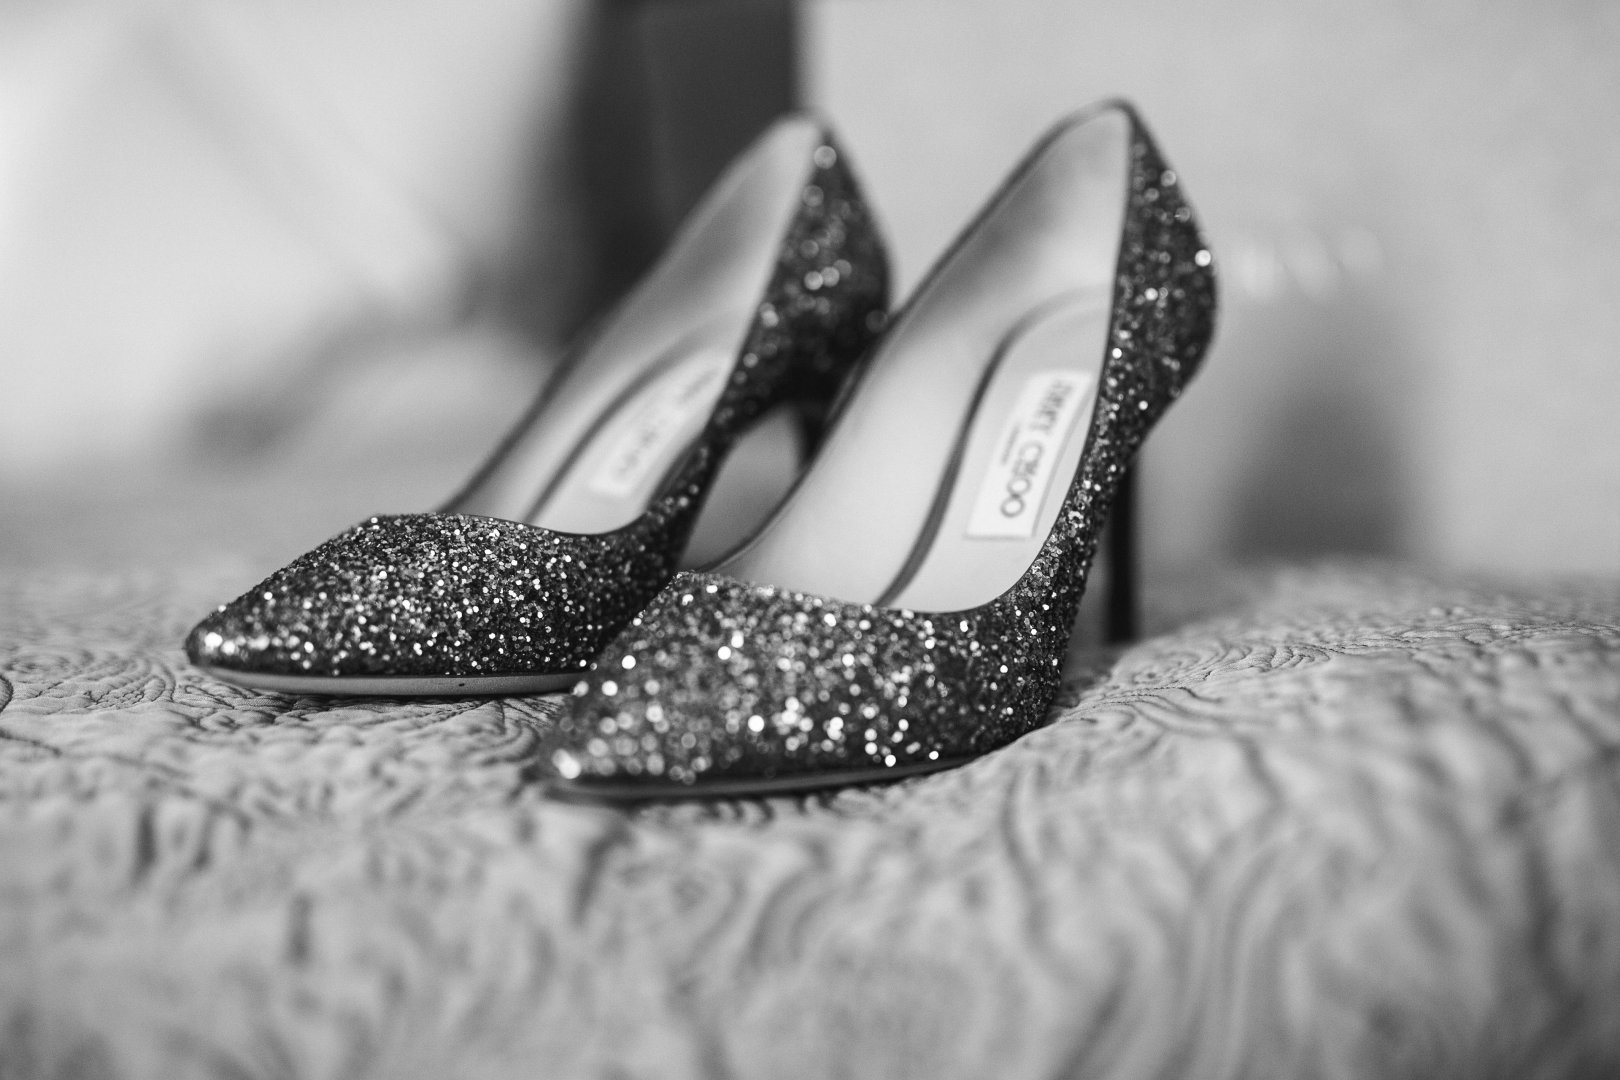 Footwear White Black Photograph Shoe Black-and-white Glitter Monochrome Monochrome photography Silver Close-up Photography High heels Still life photography Leg Embellishment Dress Court shoe Bride Fashion accessory Wedding Ballet flat Stock photography Ceremony Style Metal